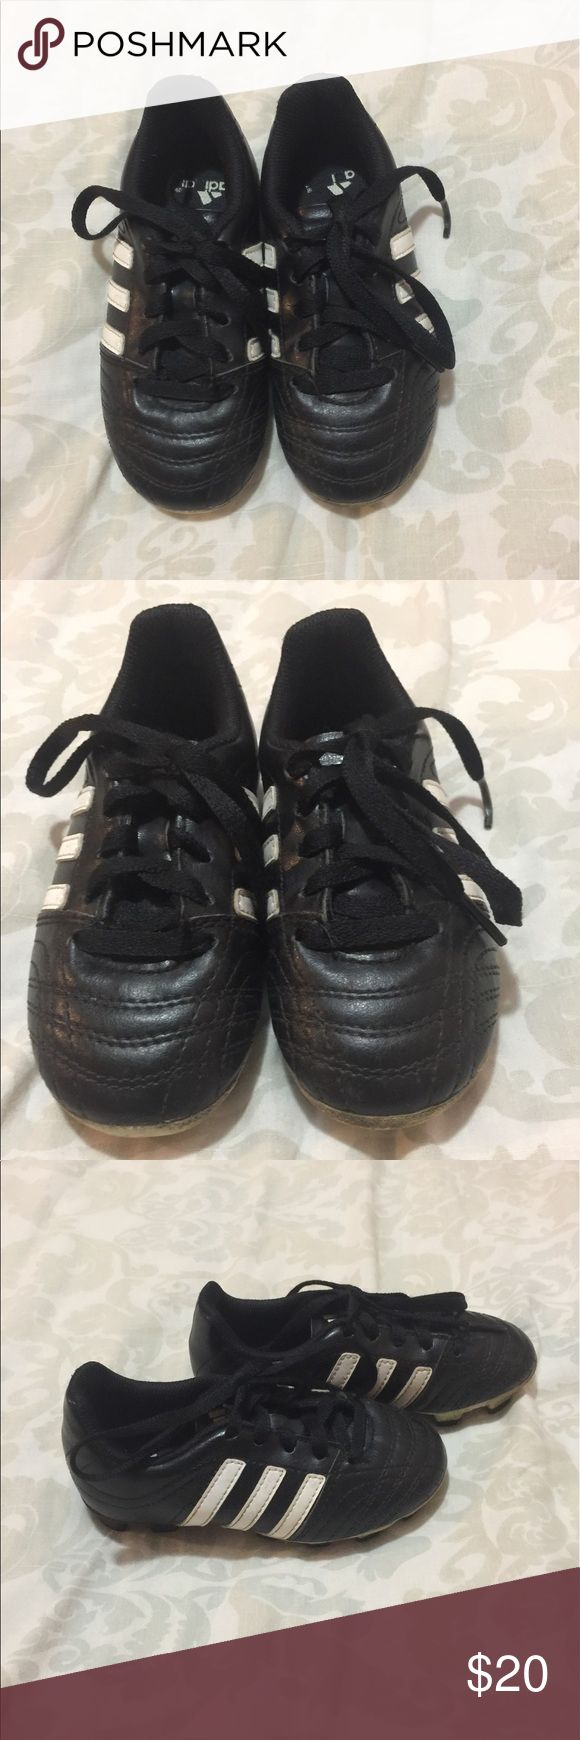 Adidas toddler soccer cleats. In good condition. True to size. No stench smell. Black and white toddler cleats. Prices are negotiable make me a offer. Adidas Shoes Sneakers